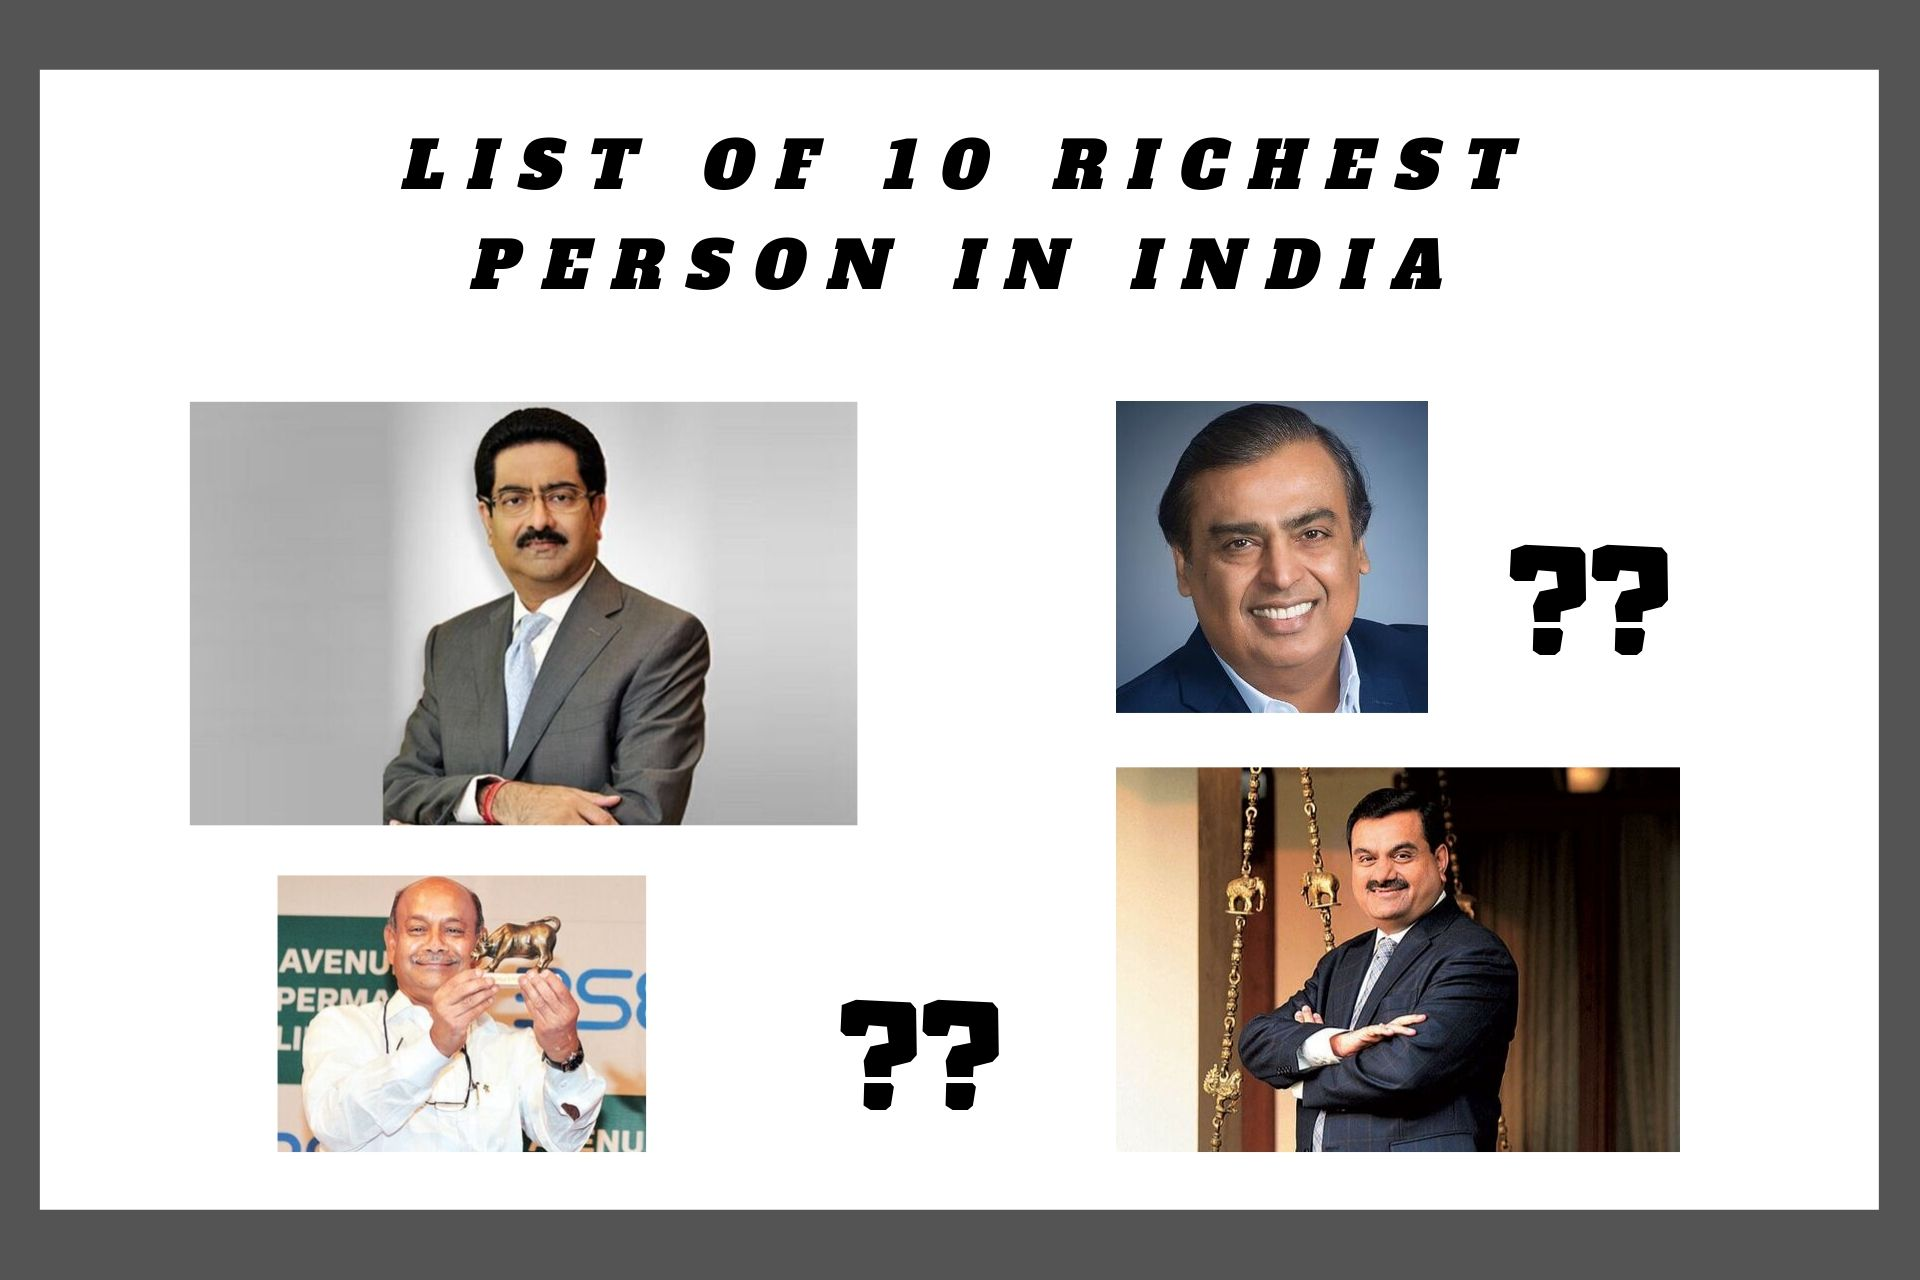 Top 10 Richest Person in India in 2019